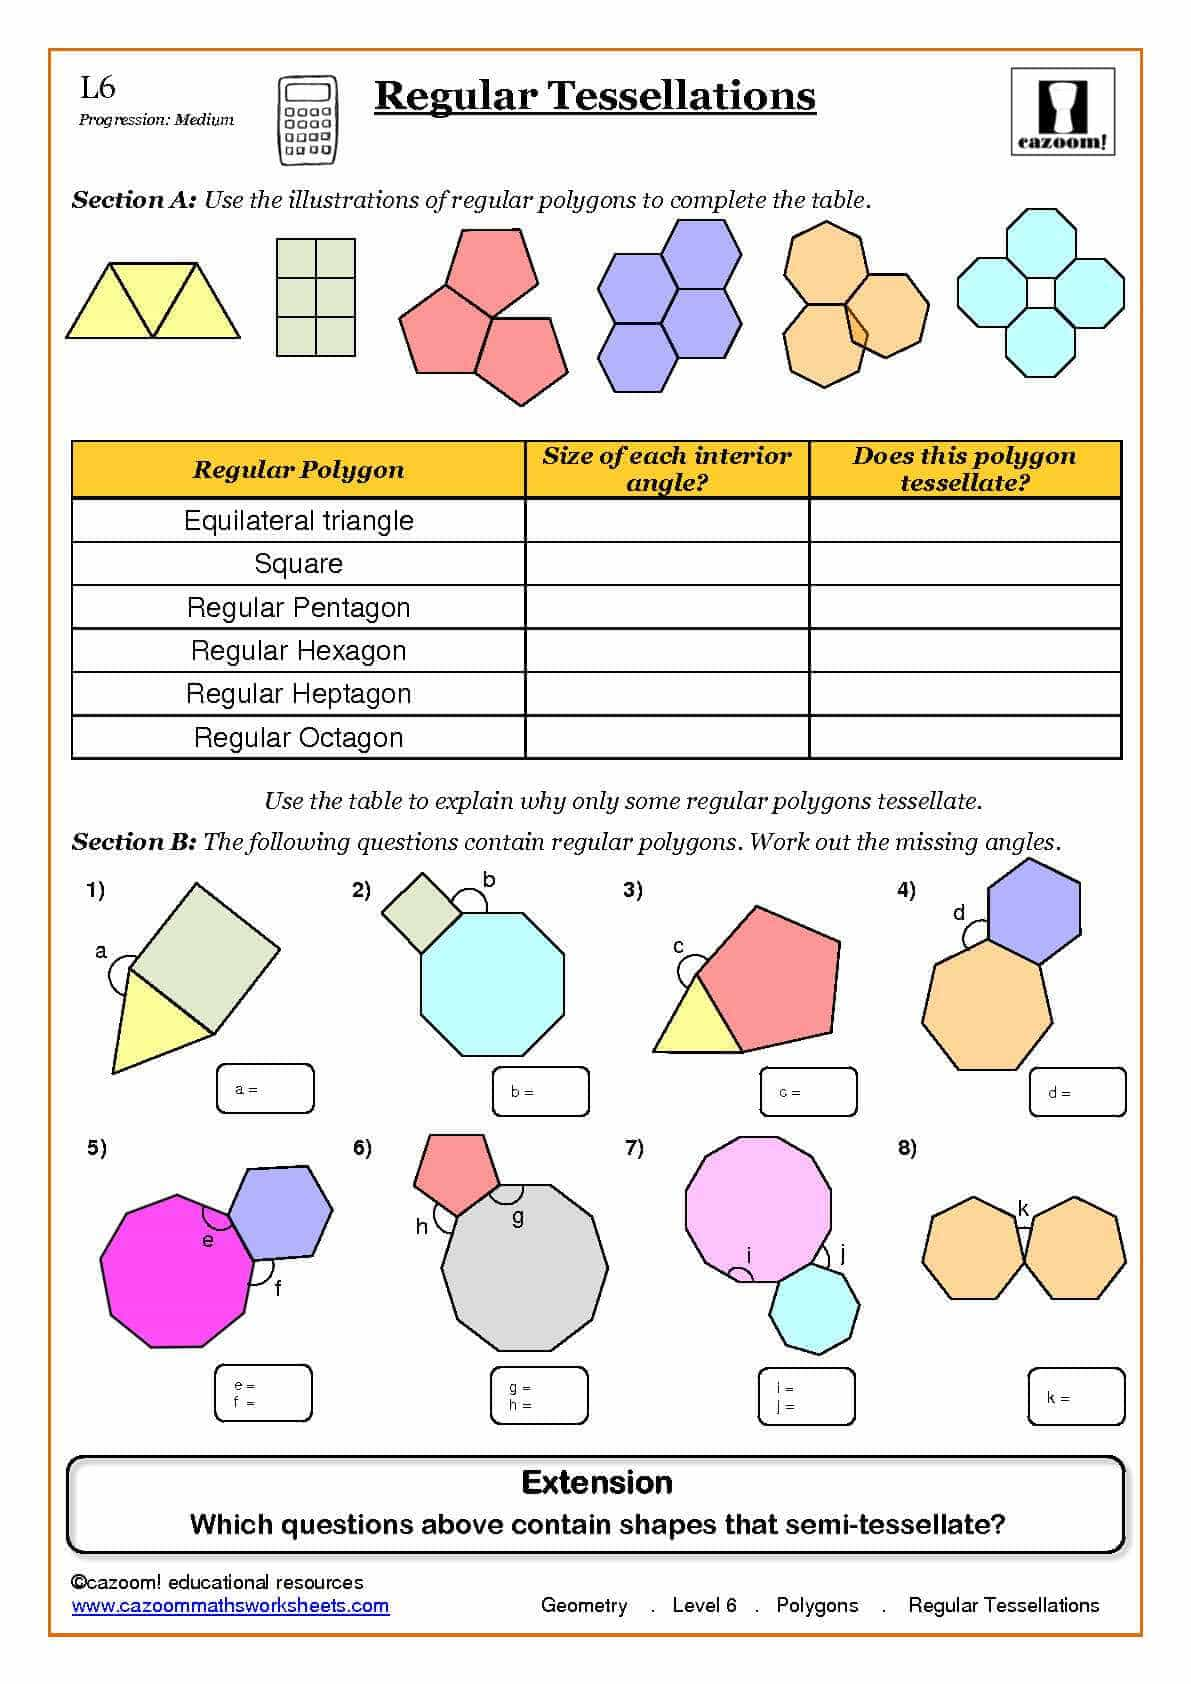 Free Ks3 Maths Worksheets With Answers And Free Maths Worksheets For Key Stage 3